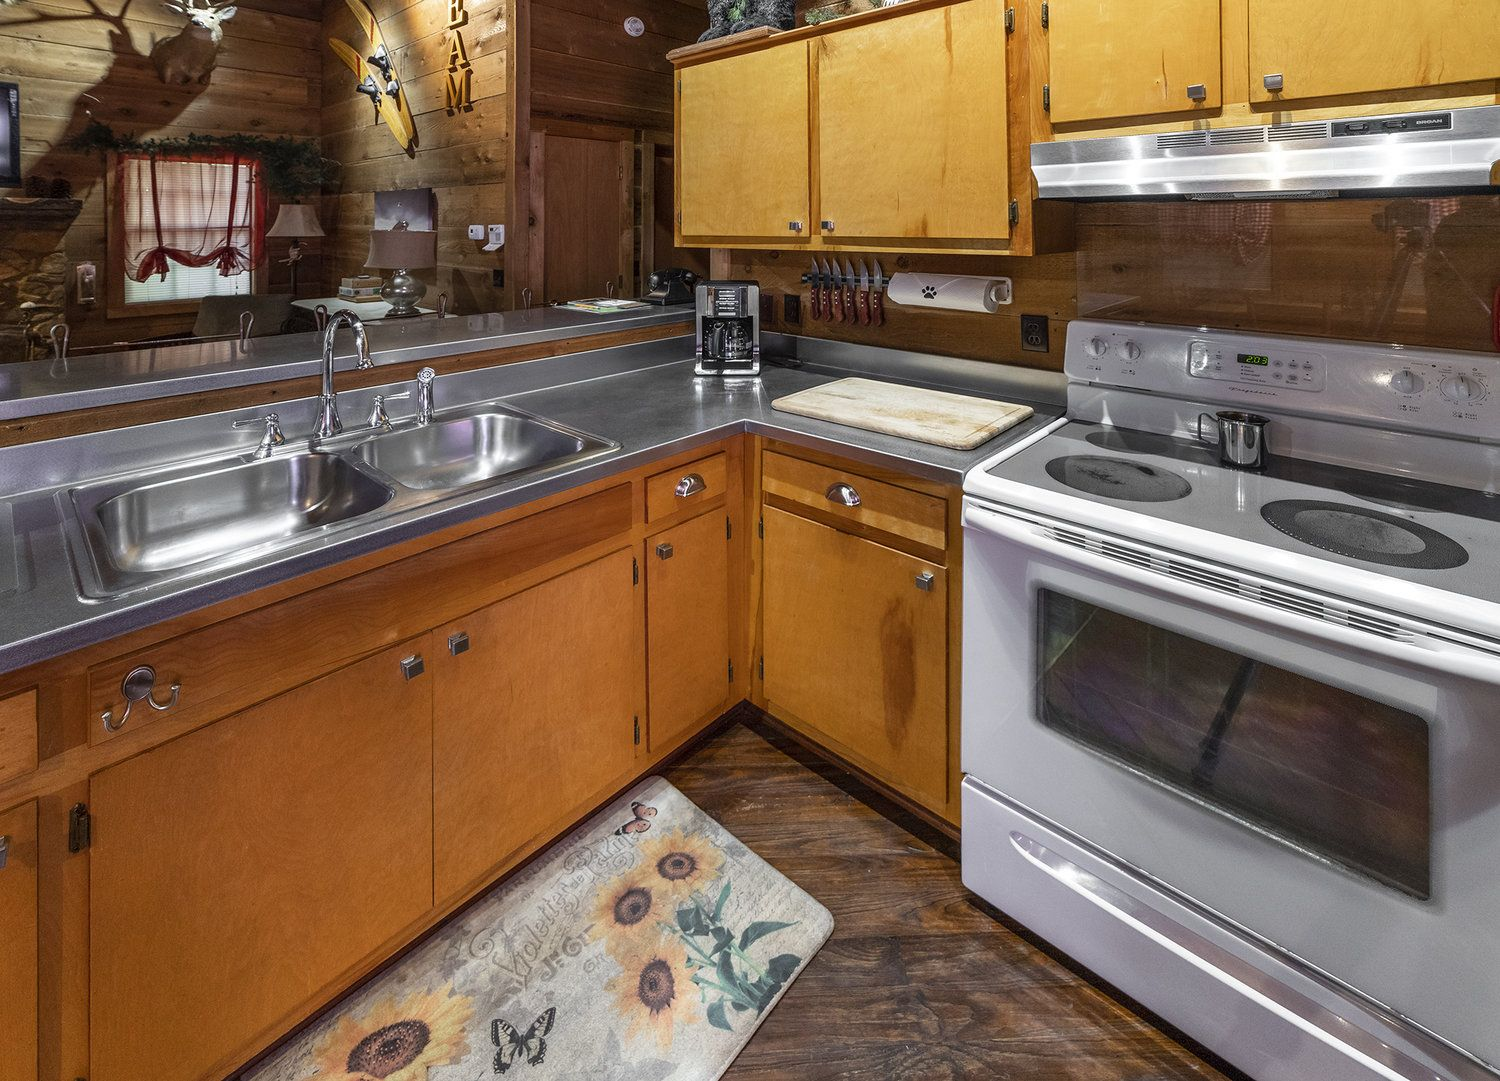 Cabins National Natural Landmark Dismals Canyon In 2020 Cabin Cabin Rules Kitchen Stove